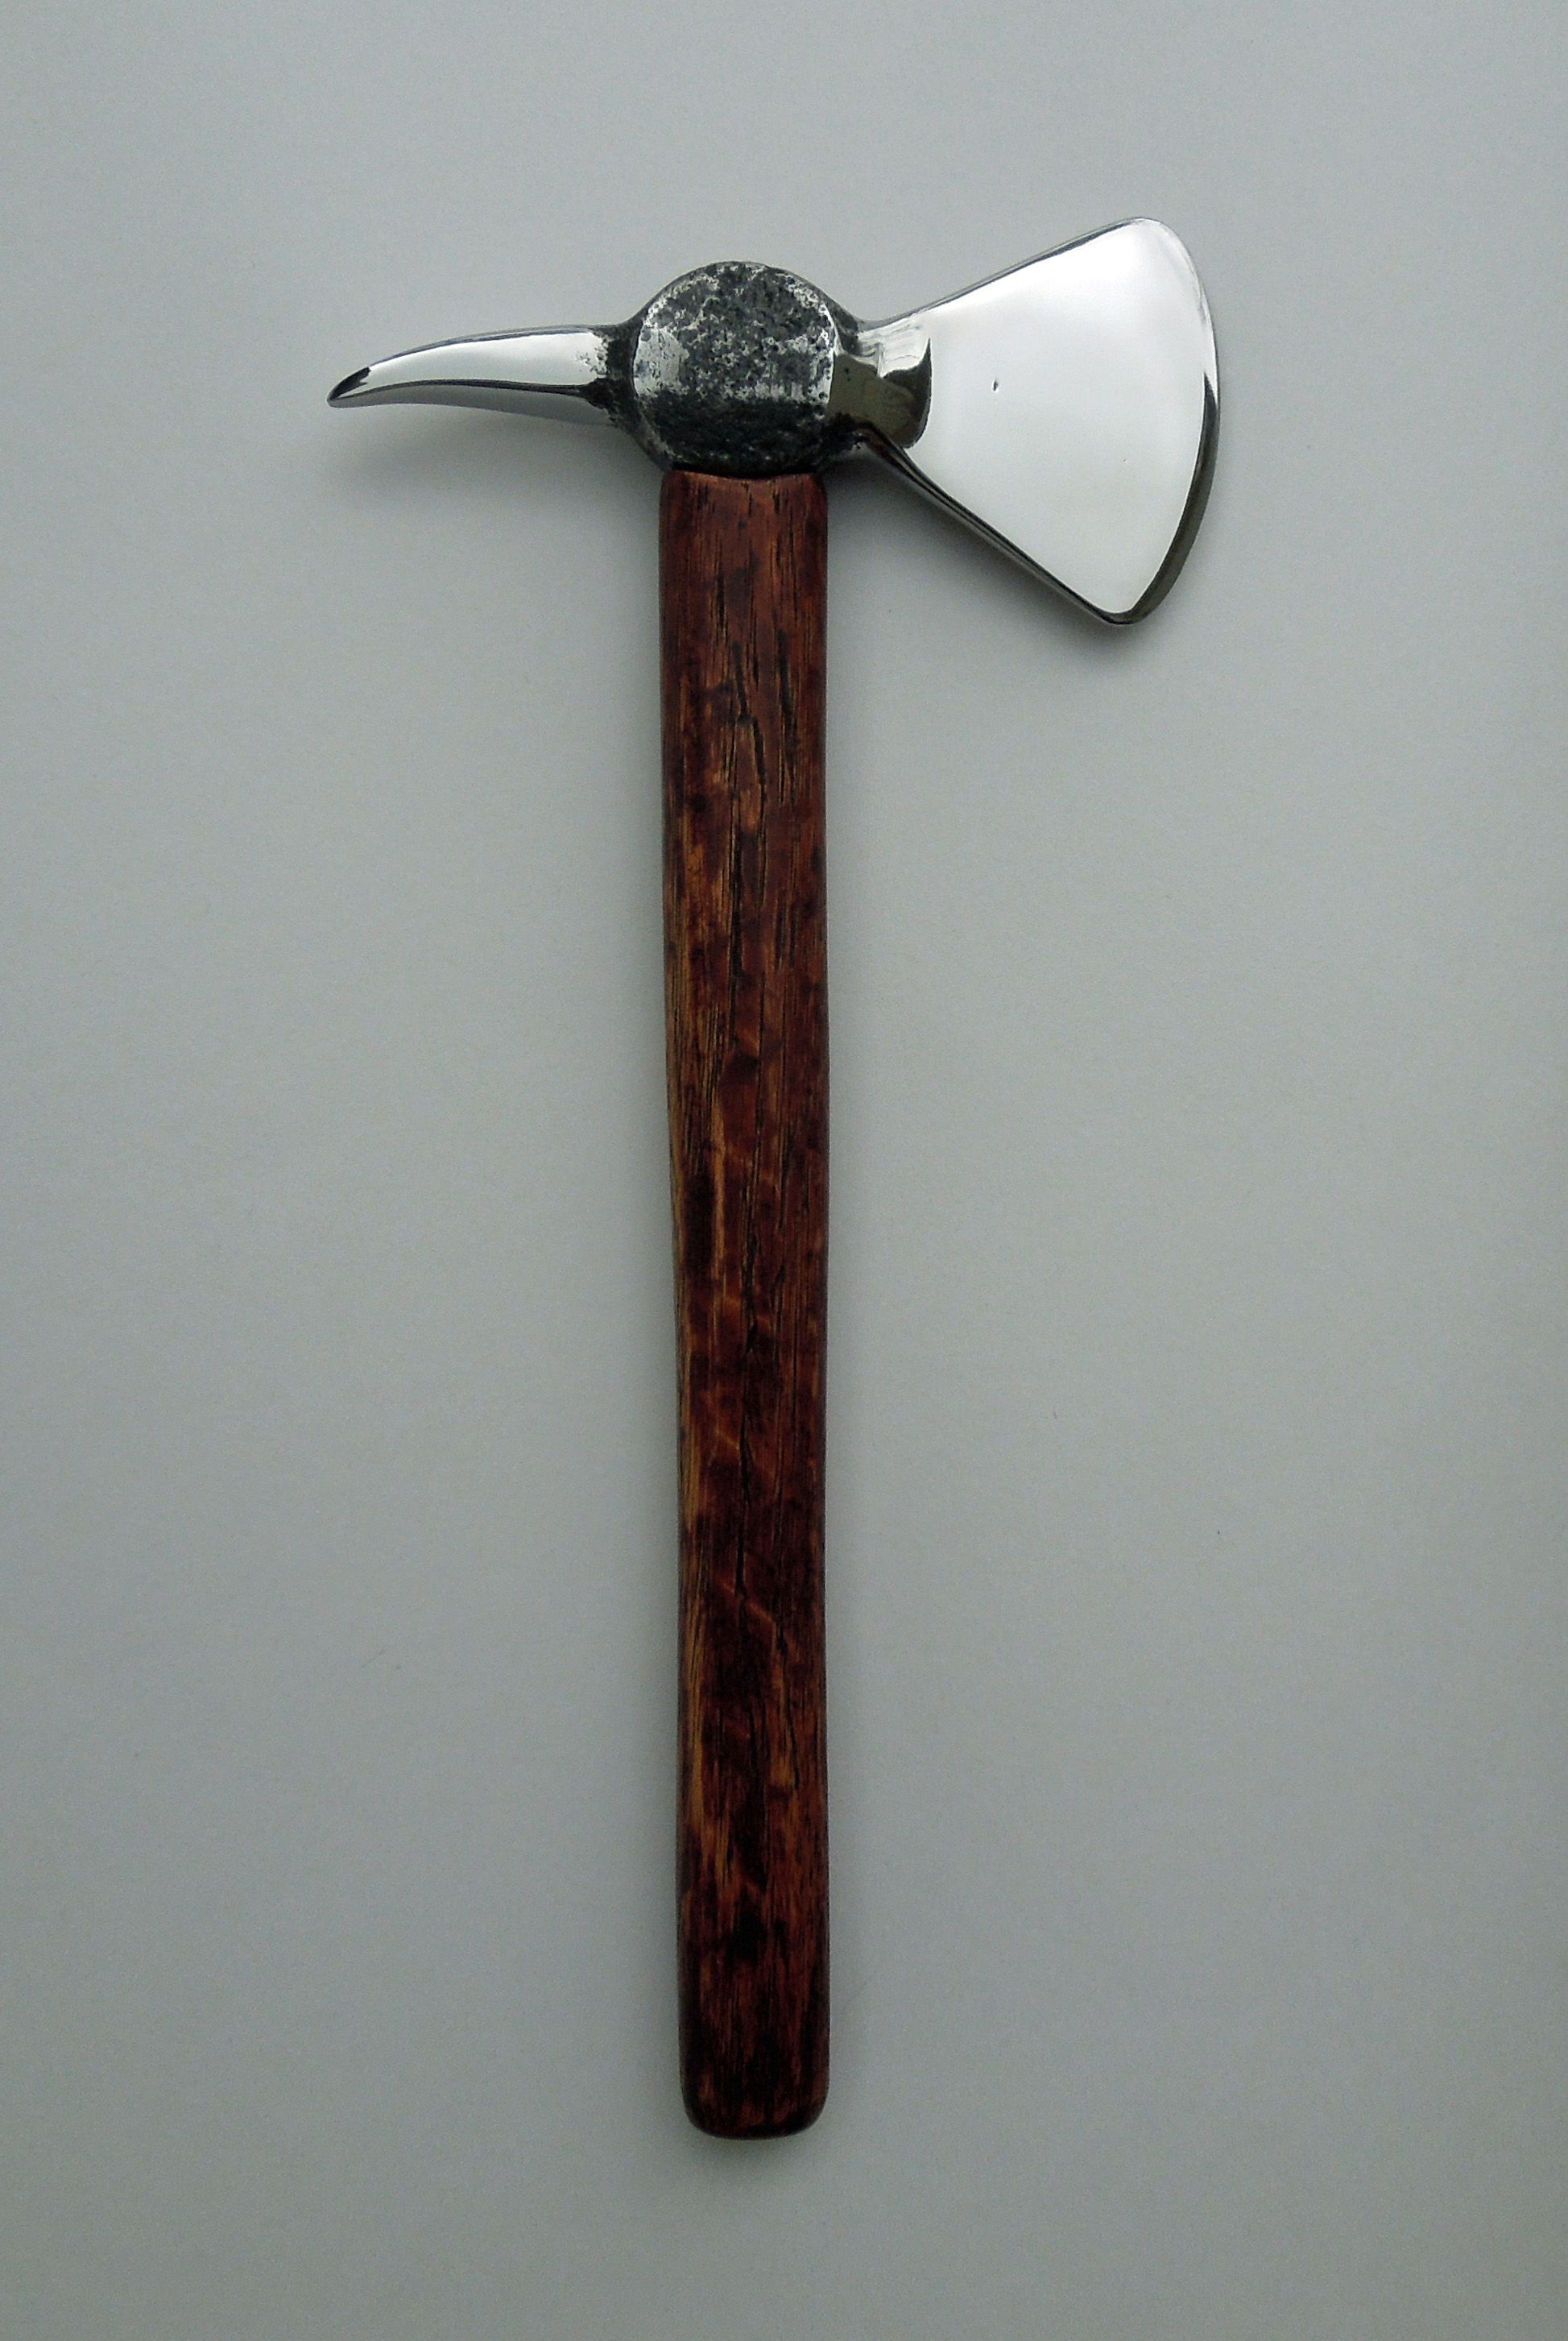 Small Tomahawk made from ball peen hammer and polished